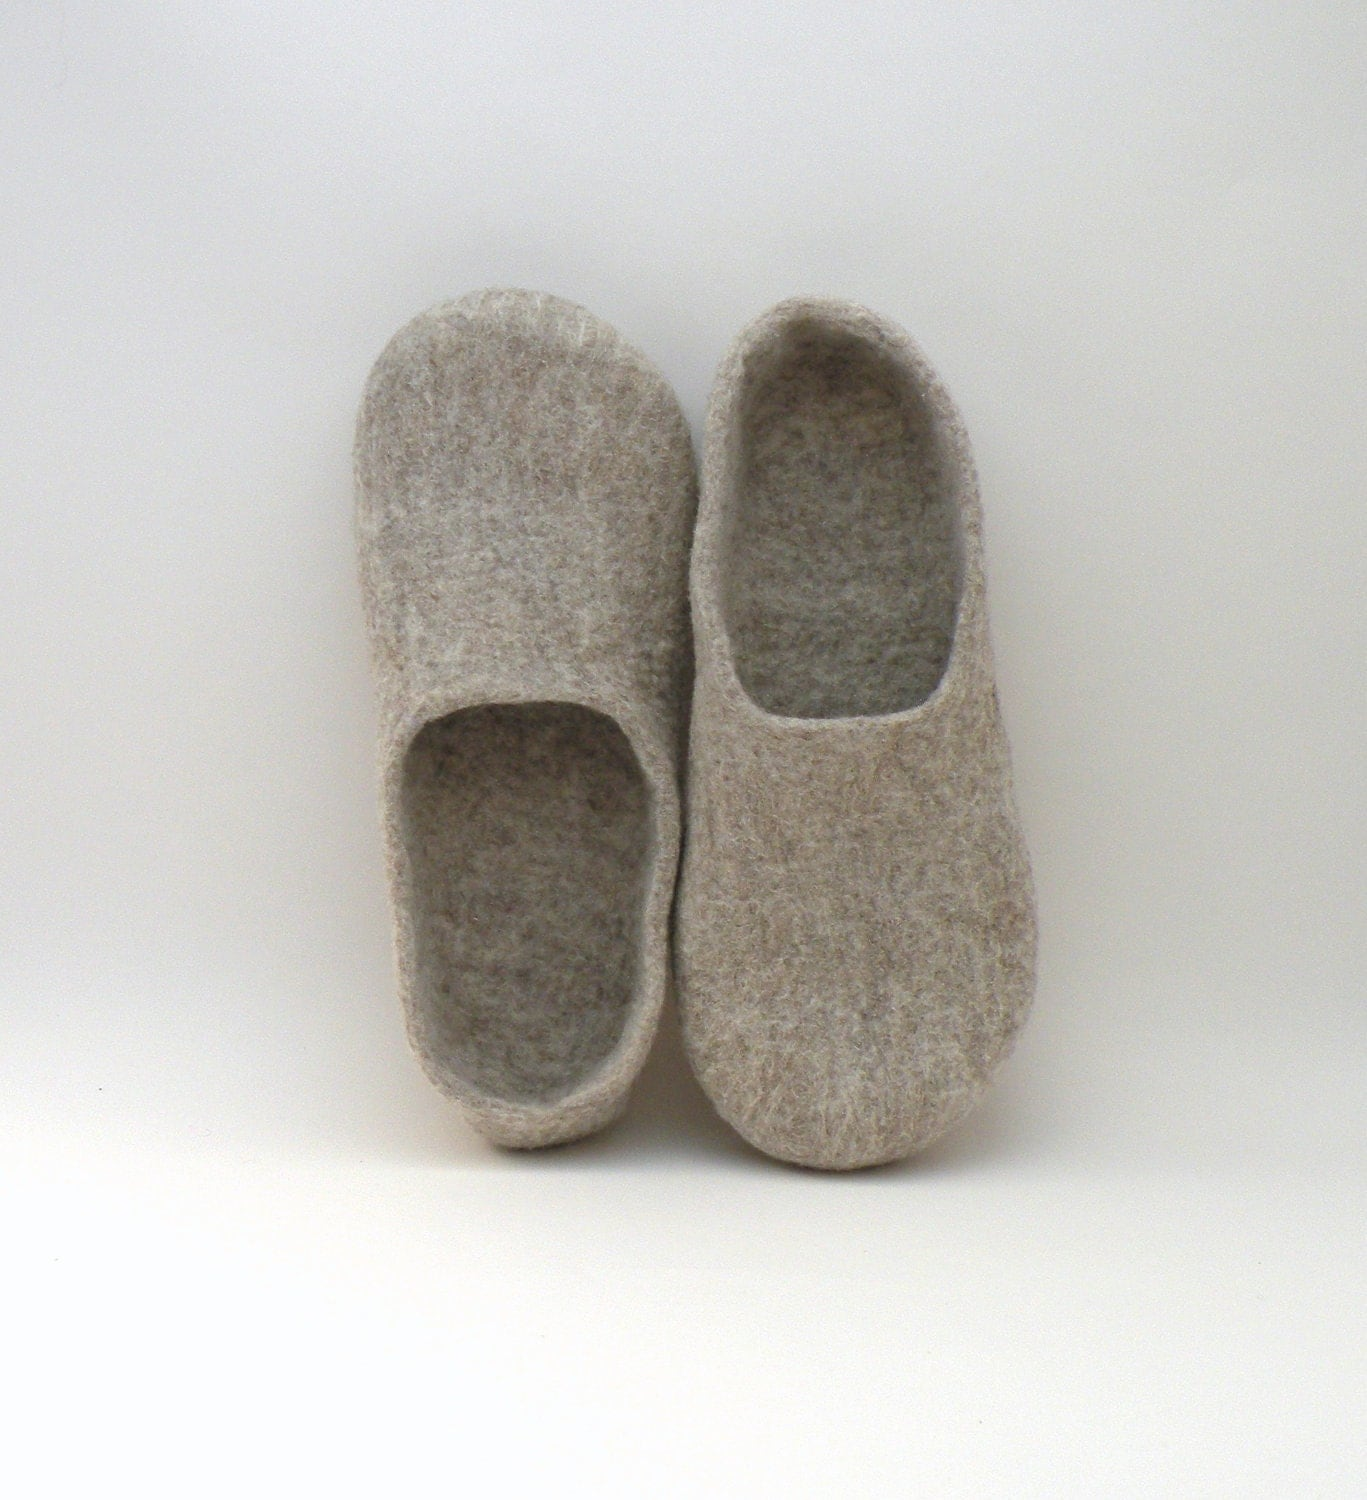 Felted slippers Neutral - natural beige wool clogs - made to order - eco mothers day - eco friendly - AgnesFelt